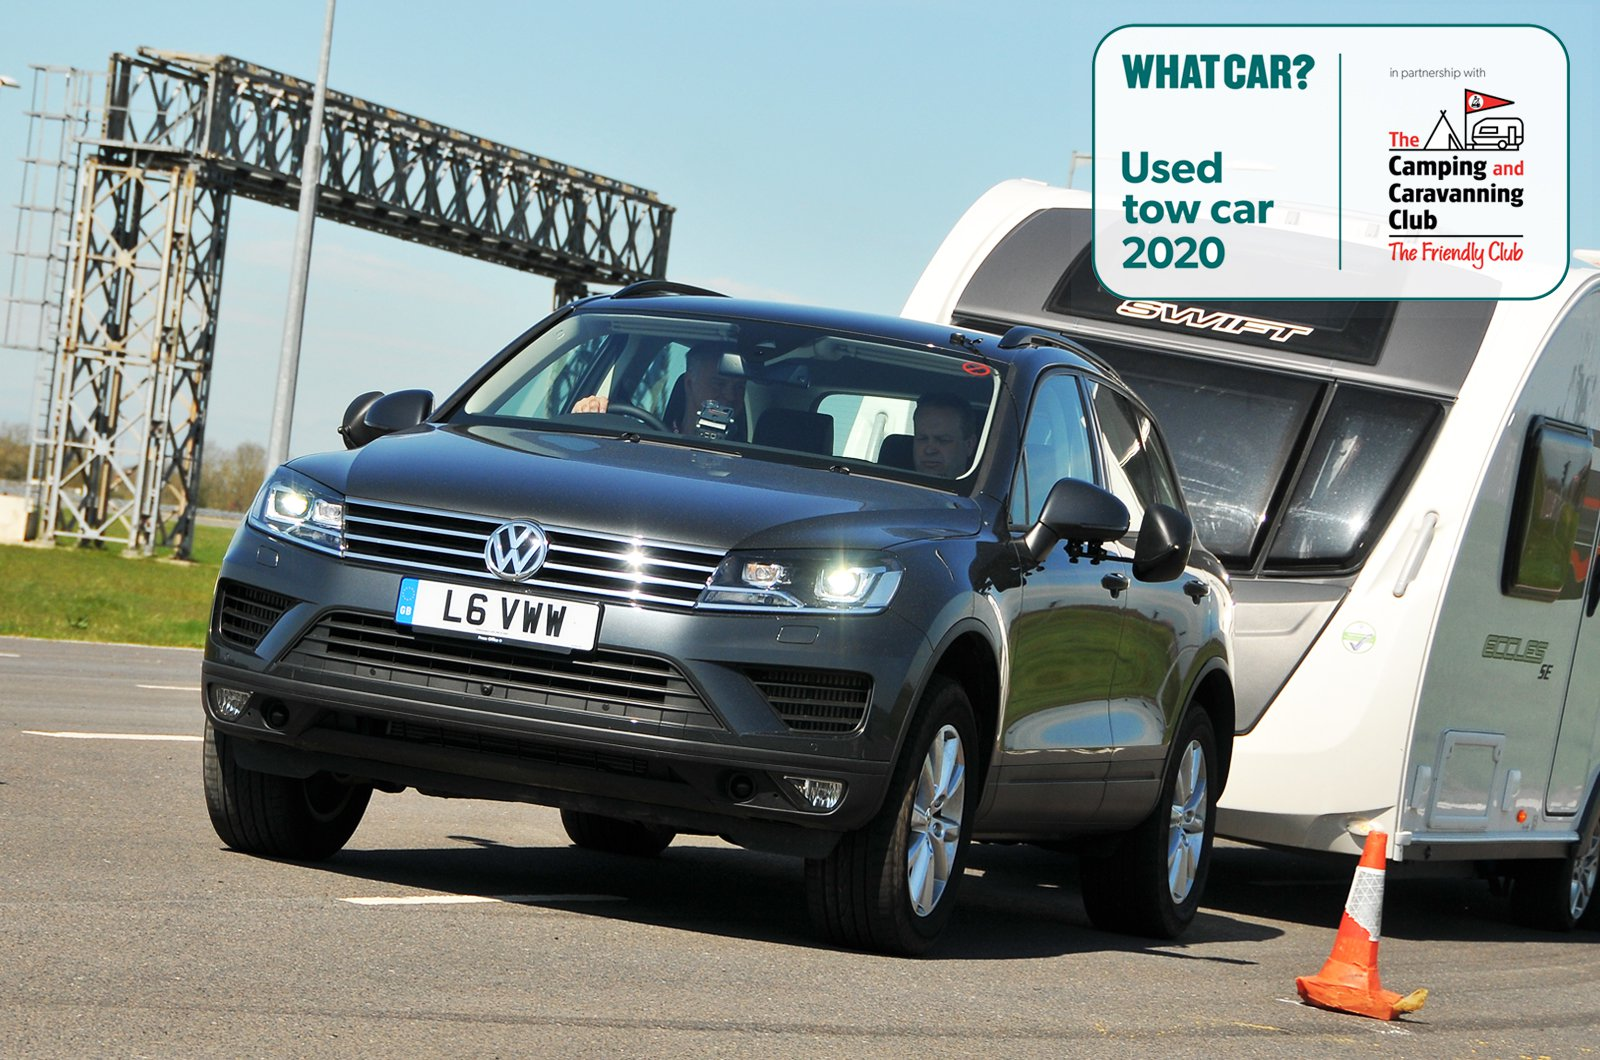 Used Tow Car - Volkswagen Touareg